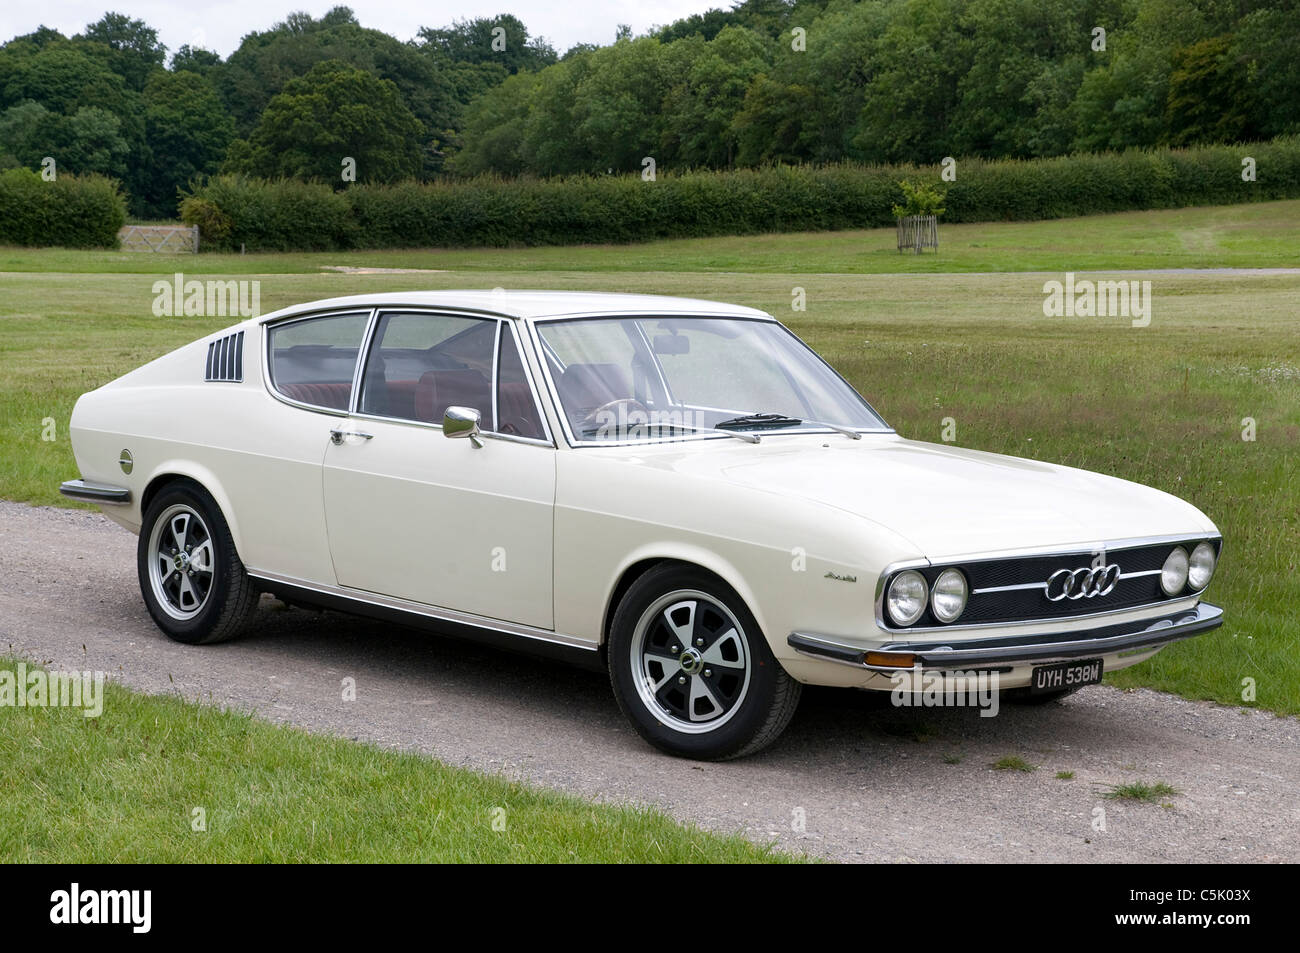 Audi 100 Coupe S 1973 Stock Photo